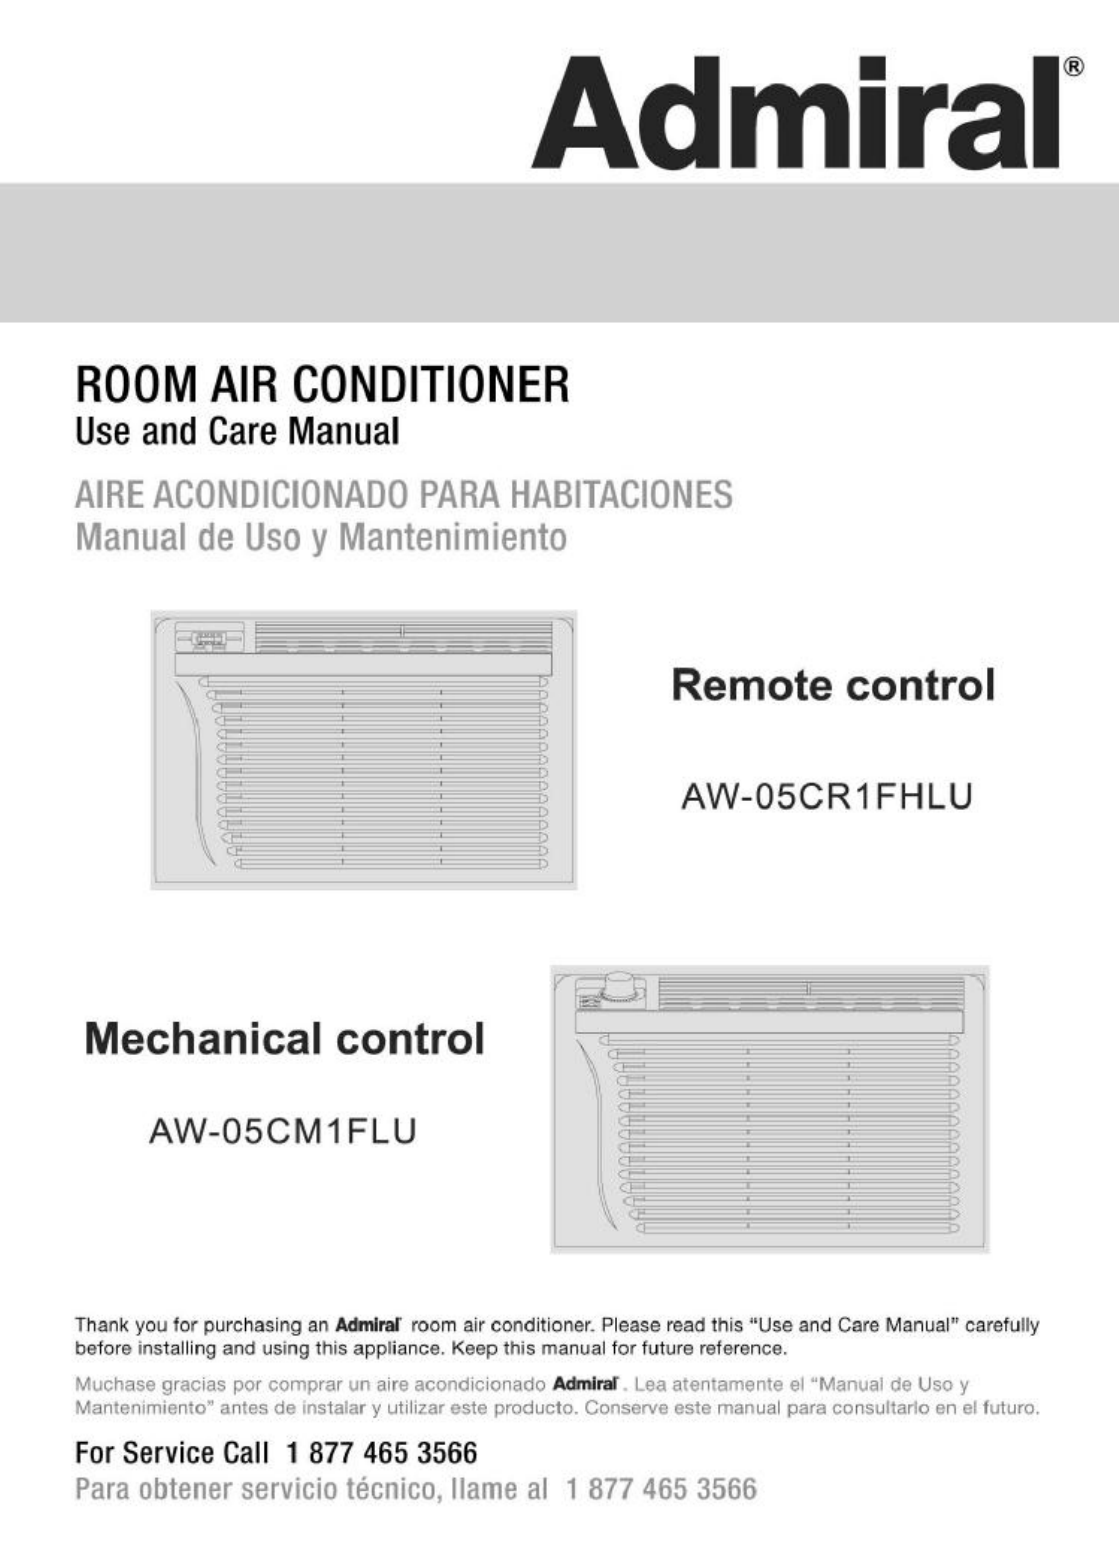 Admiral air conditioner aw 05cm1flu user guide manualsonline next publicscrutiny Images